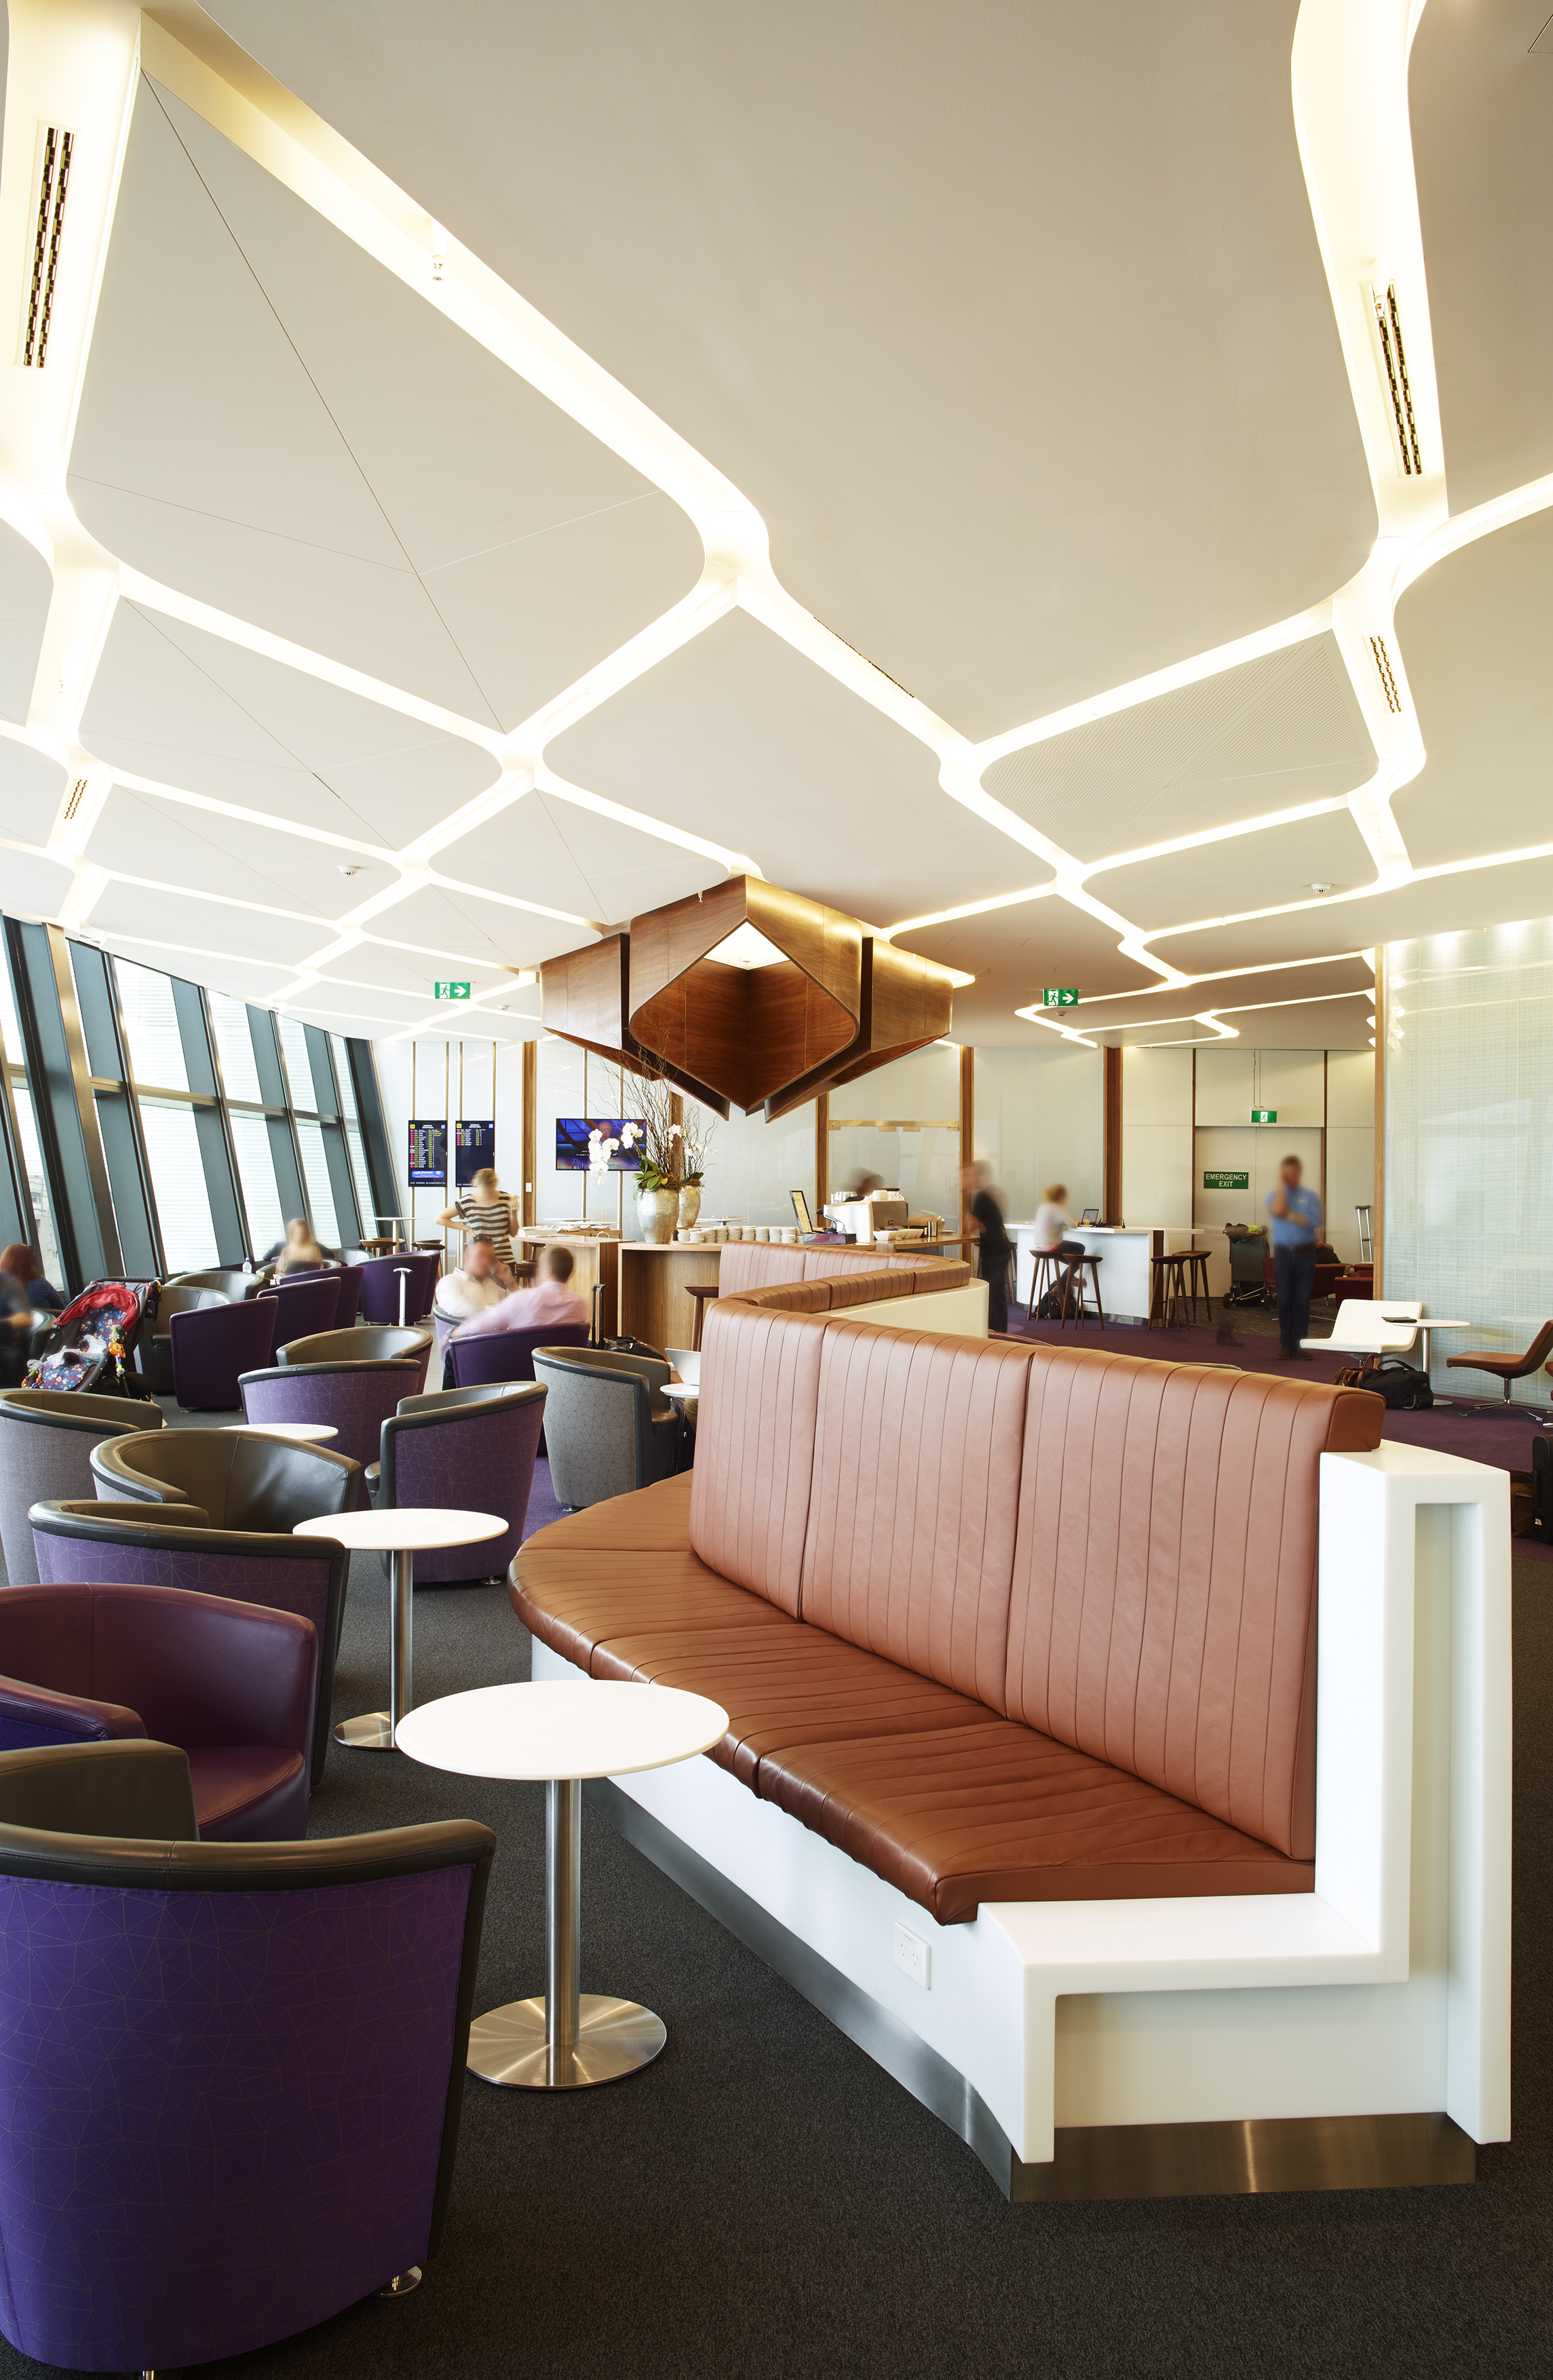 Going Inside Virgin Australia's New Melbourne Lounge – TheDesignAir